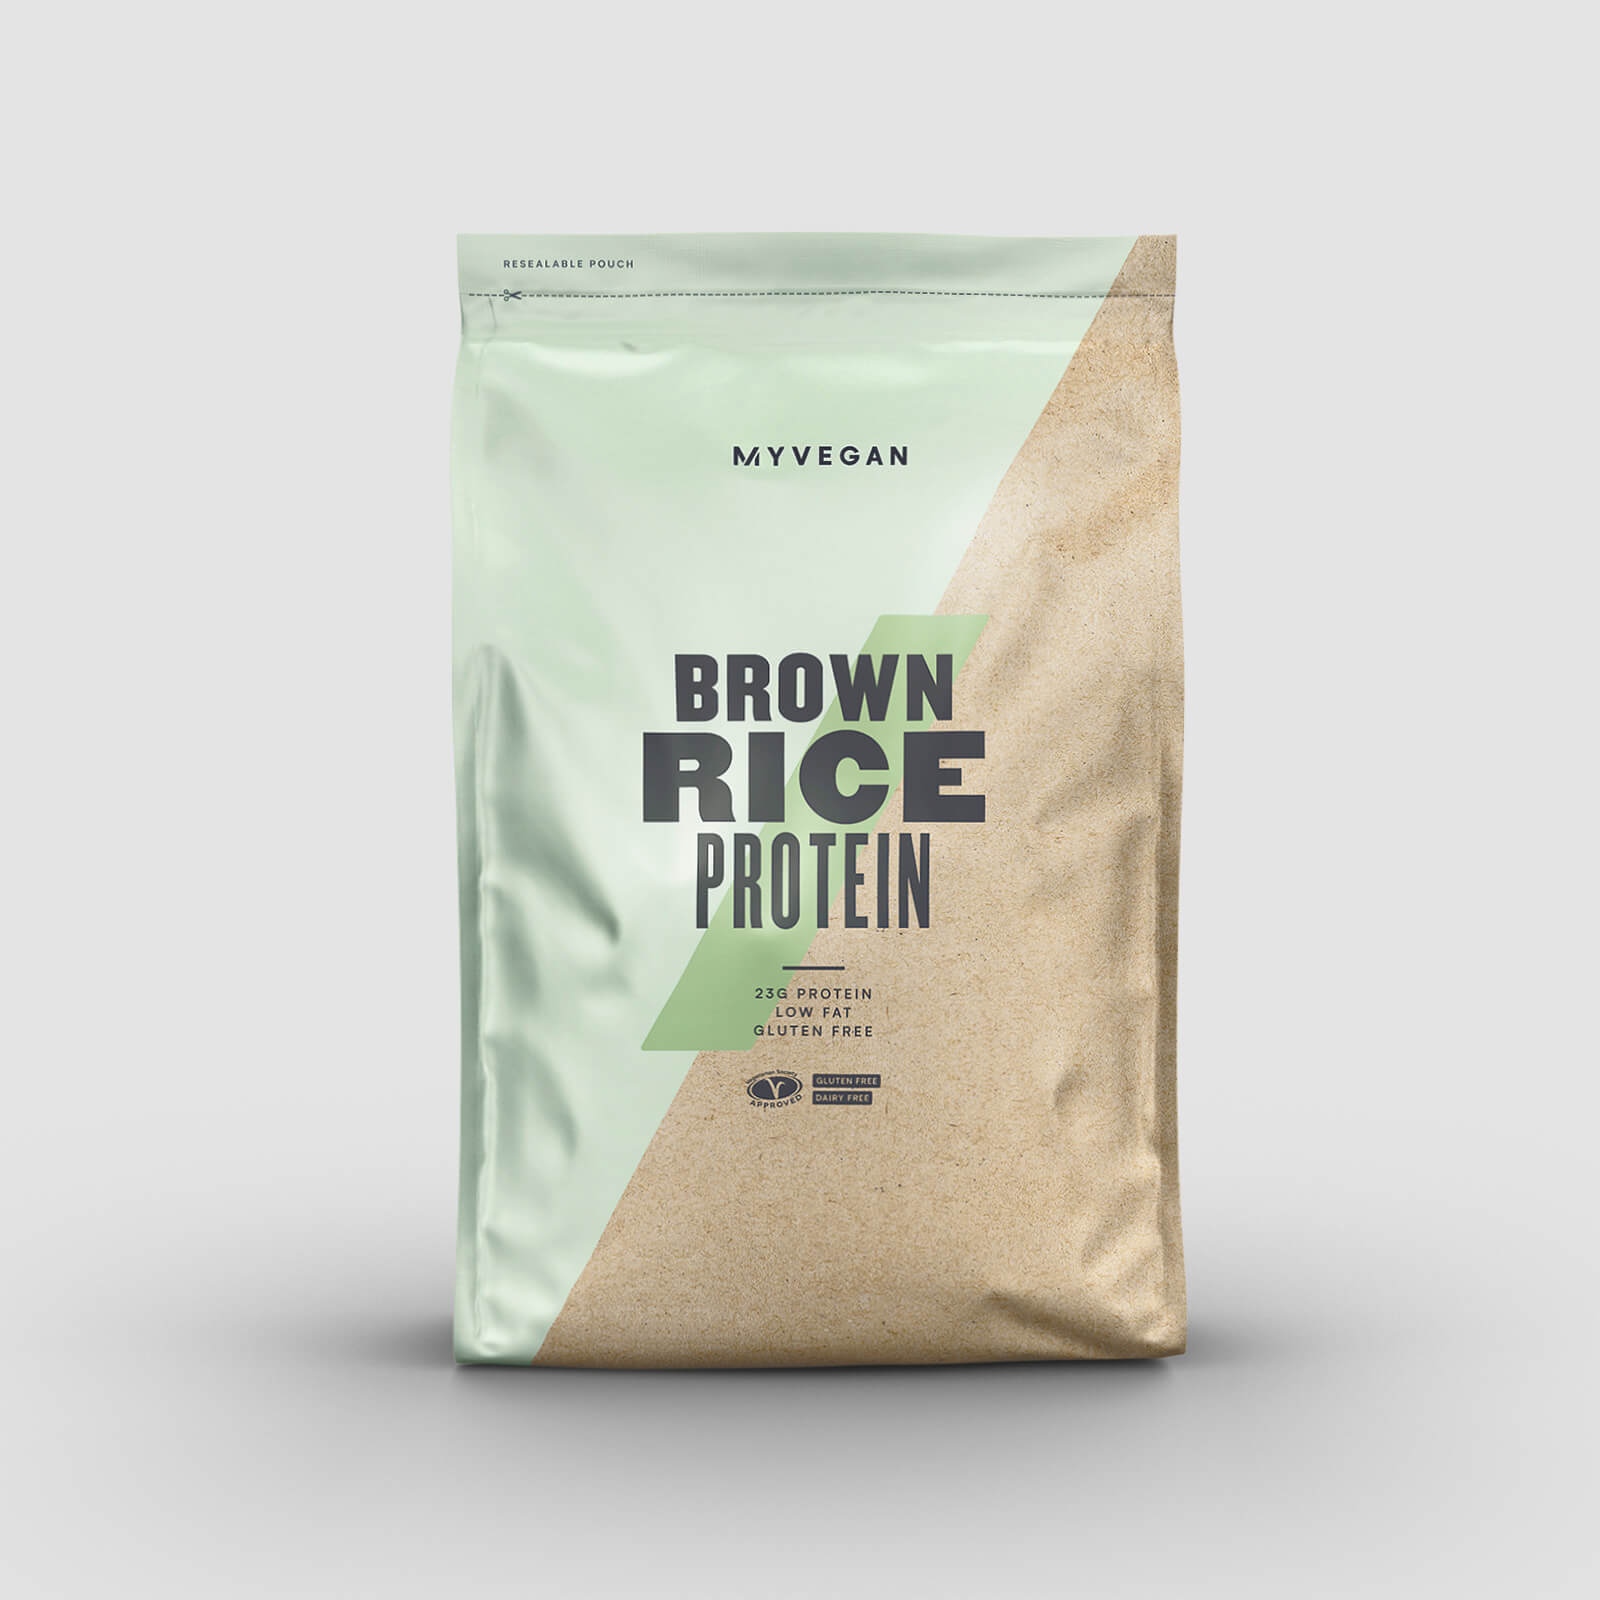 MYVEGAN Brown Rice Protein